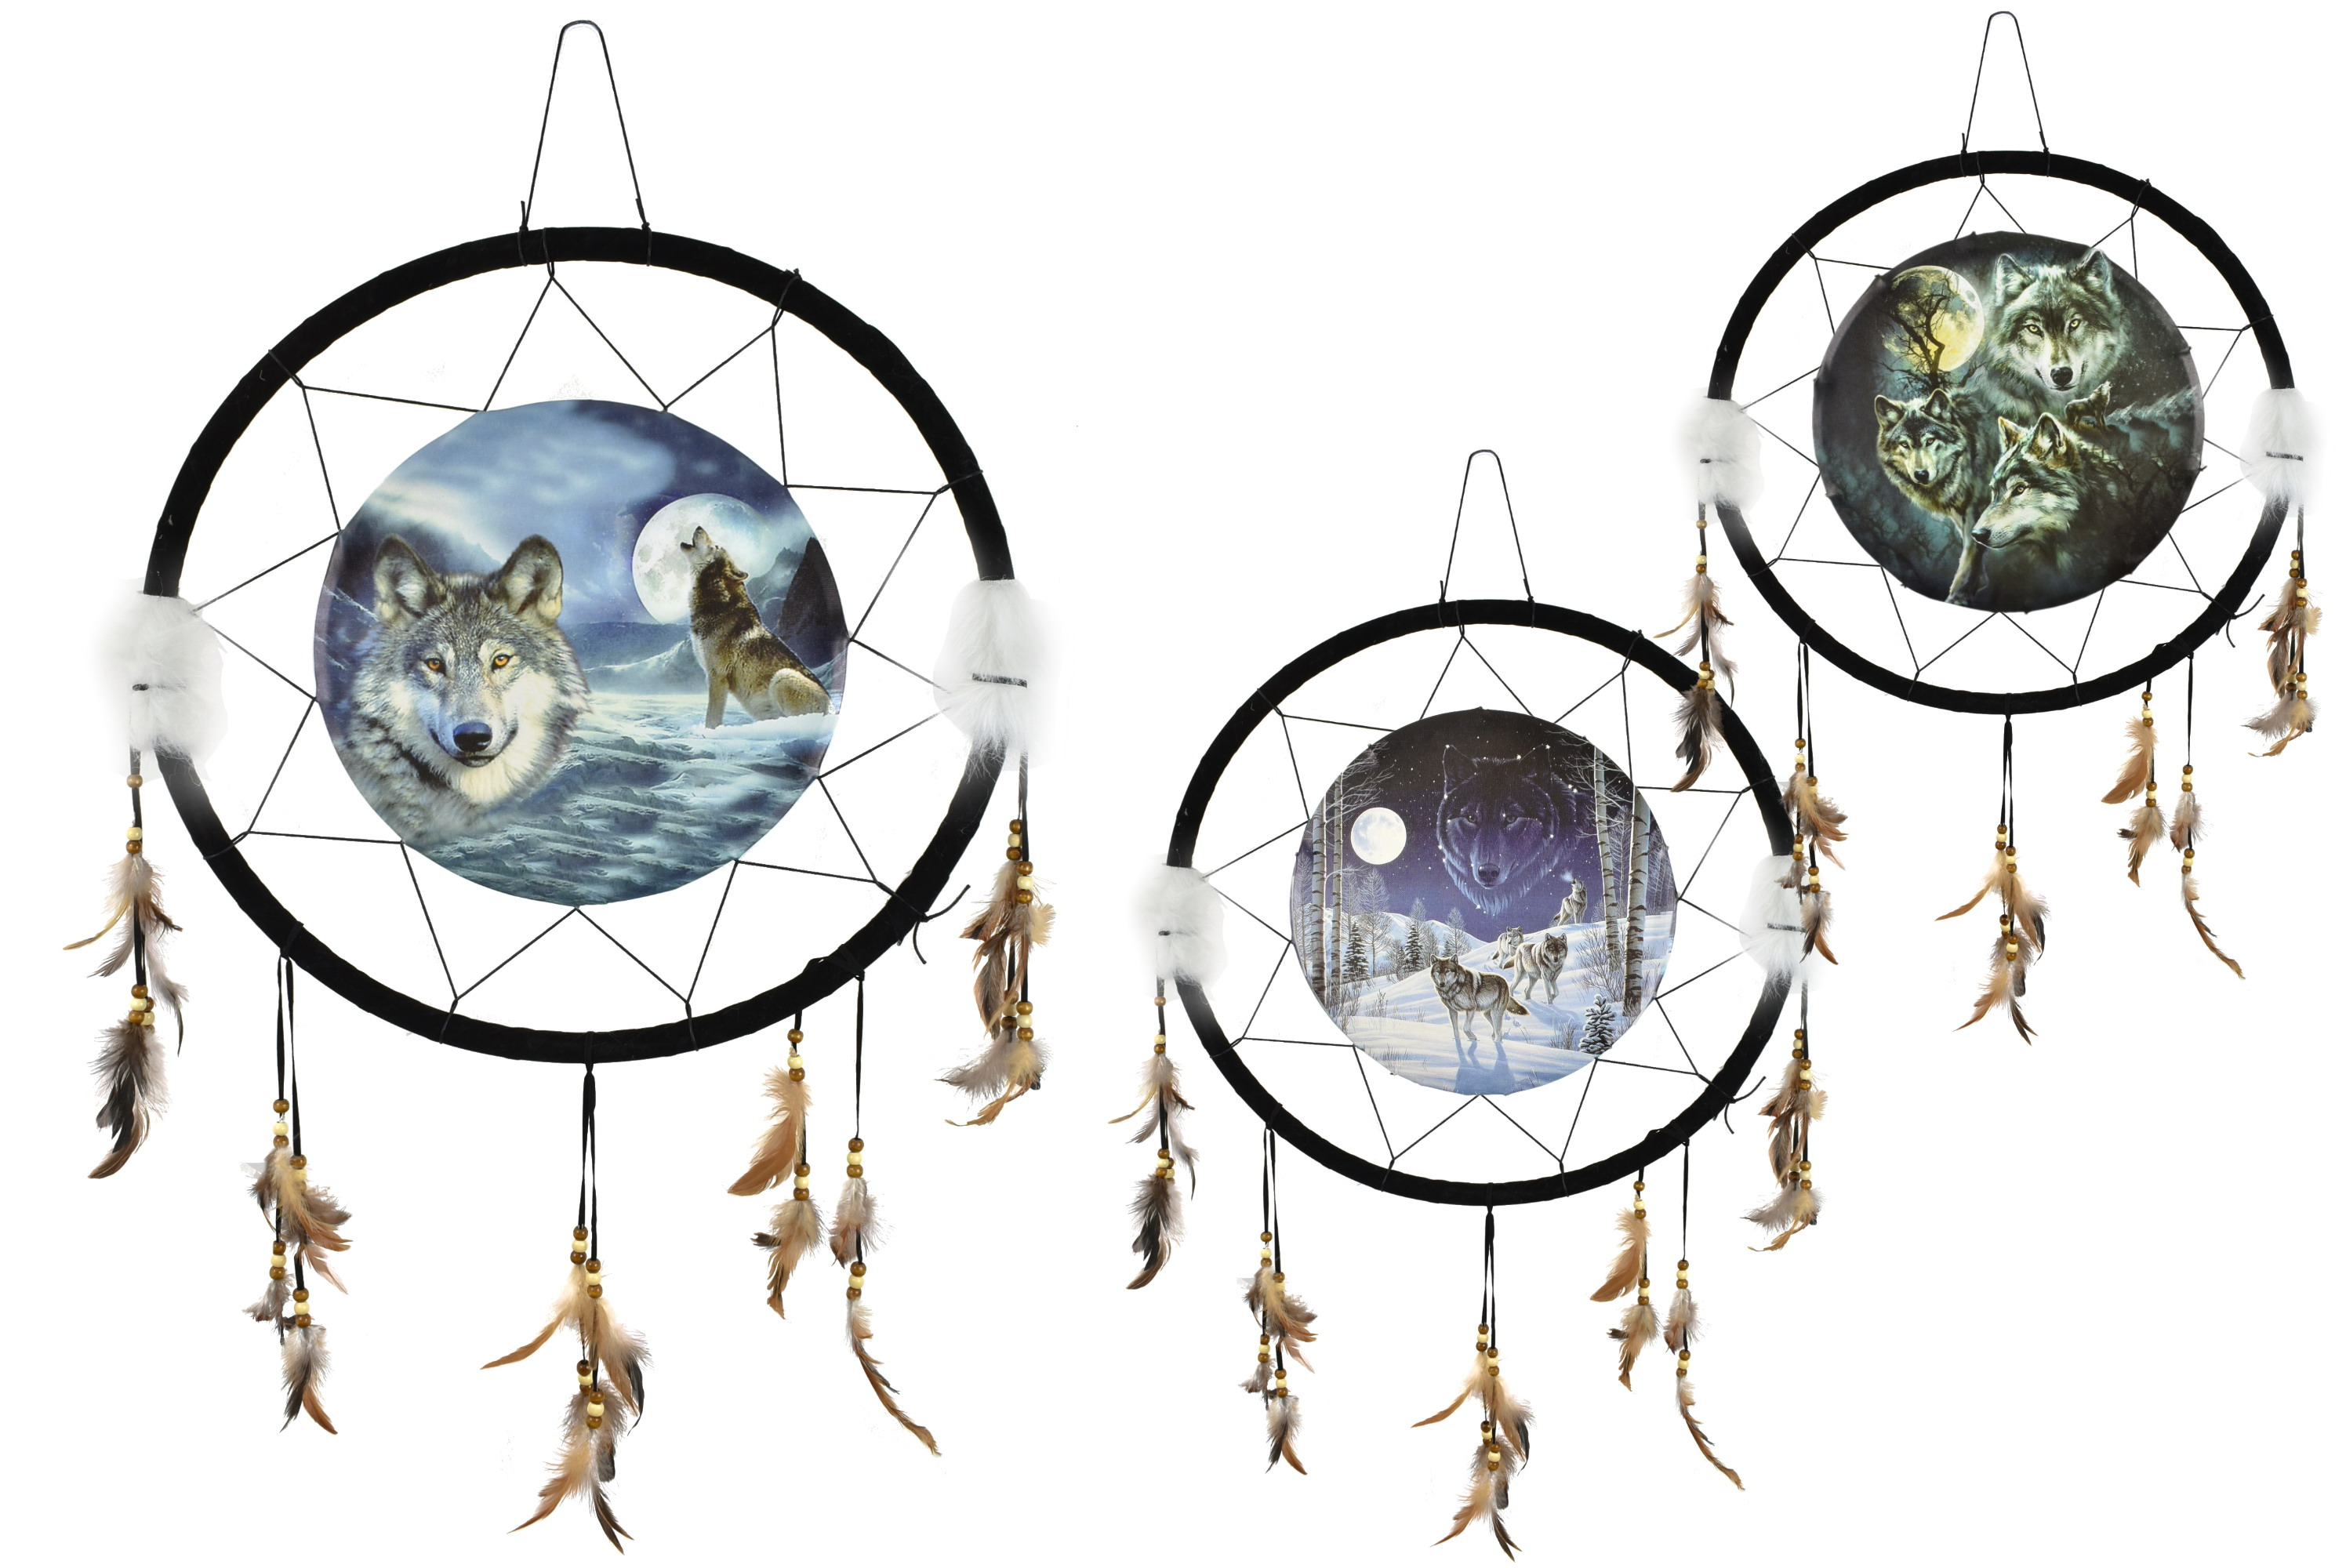 22 Inch Dream Catcher With Picture In Polybag